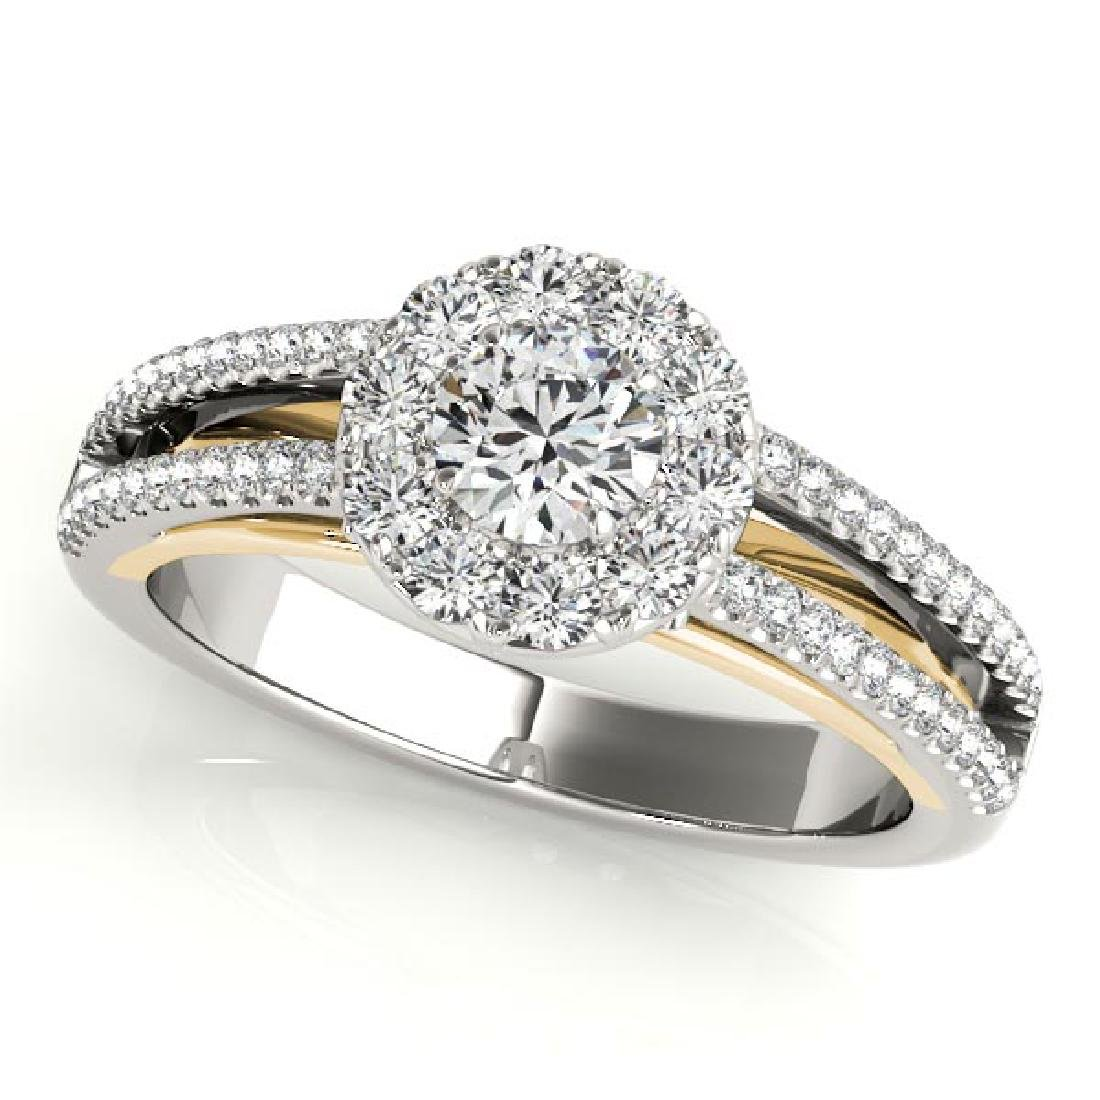 CERTIFIED TWO TONE GOLD 1.14 CT G-H/VS-SI1 DIAMOND HALO